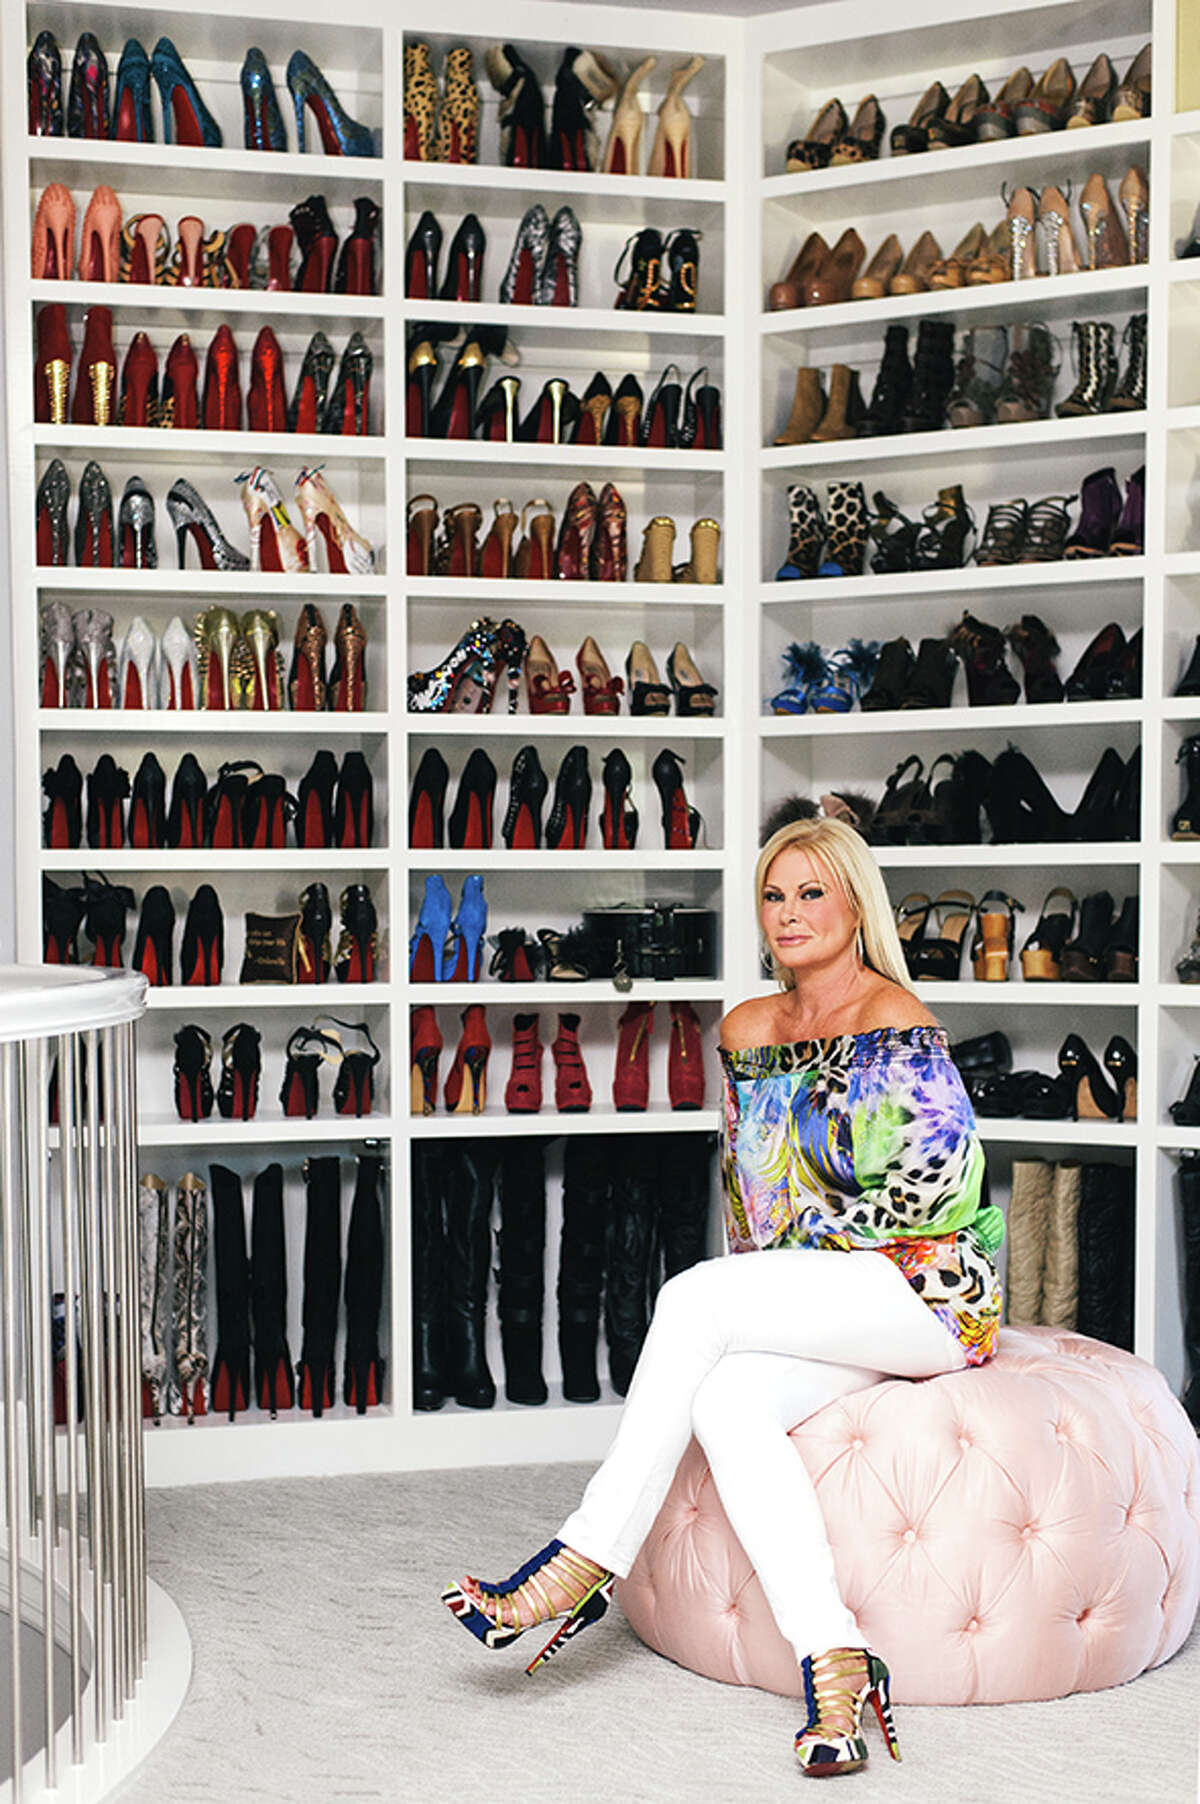 How to throw the perfect closet party: champagne, a DJ, celebrity guests and this whopping 3,000-square-foot closet complete with Swarovski crystal door knobs.